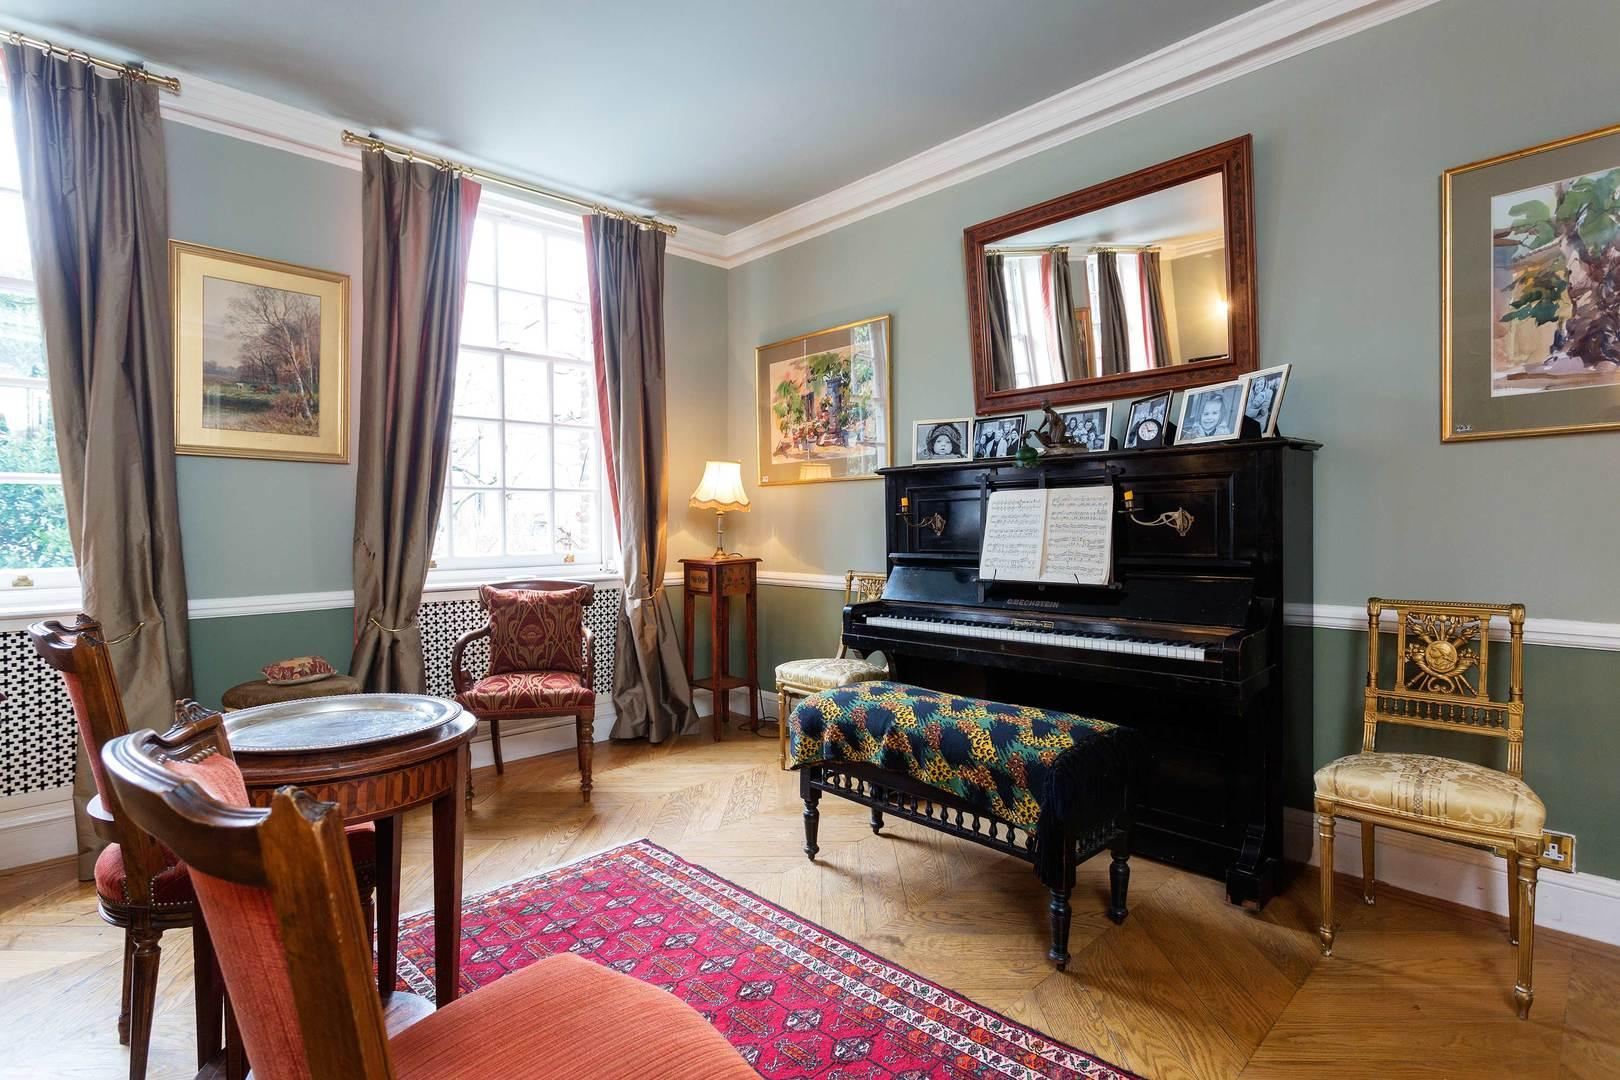 Property Image 2 - Spectacular Traditional Chelsea Home near the Thames